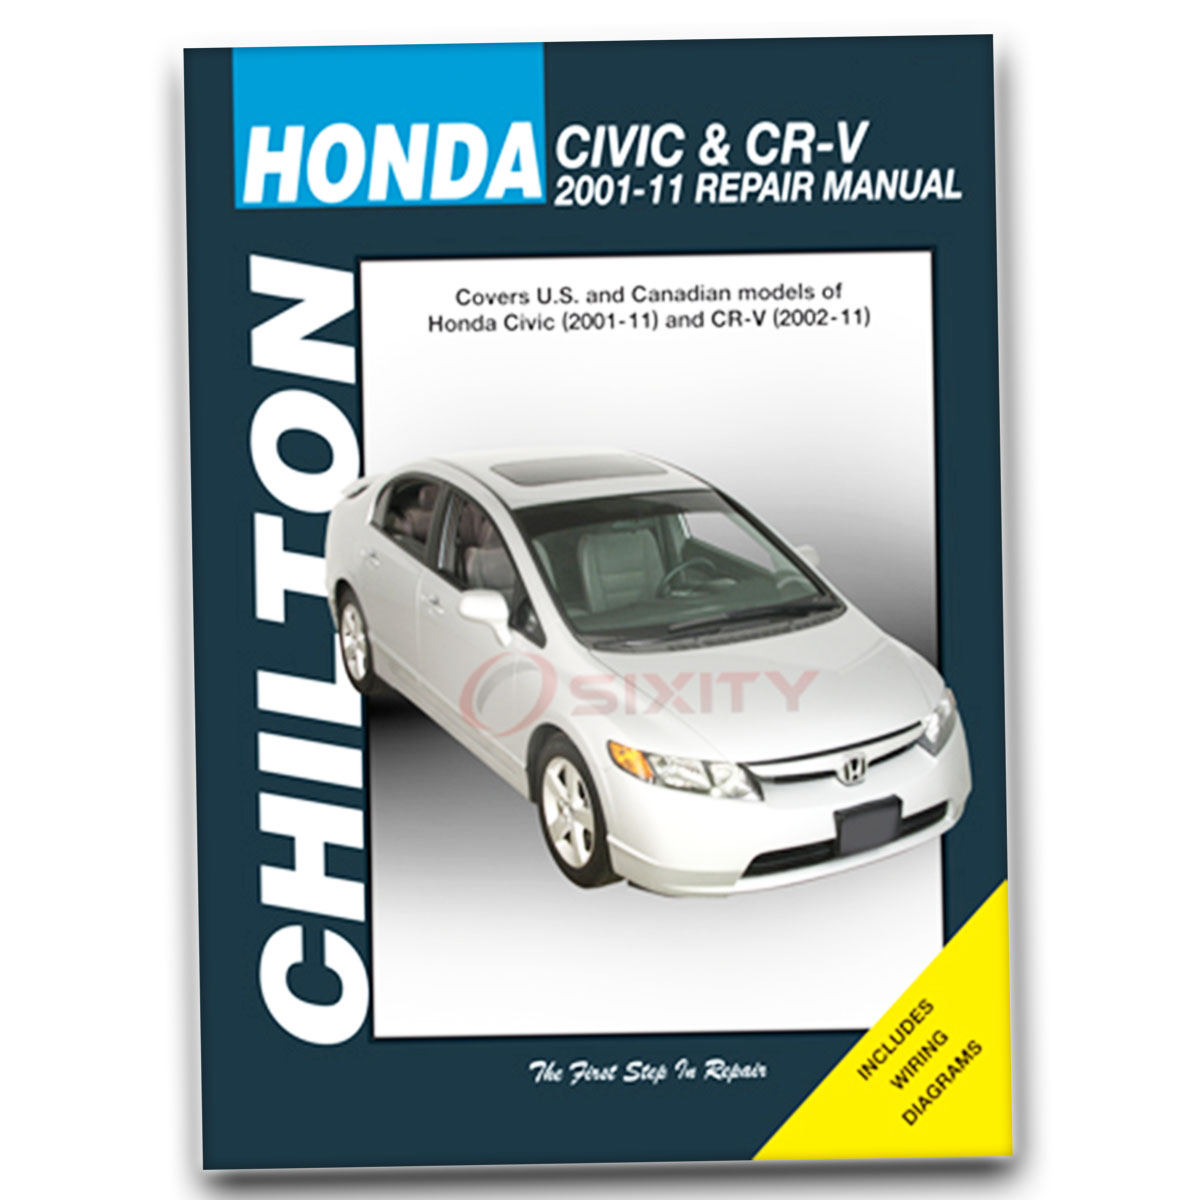 civic hybrid service manual open source user manual u2022 rh dramatic varieties com 2006 Honda Civic Owners Manual 2006 Honda Civic Owners Manual